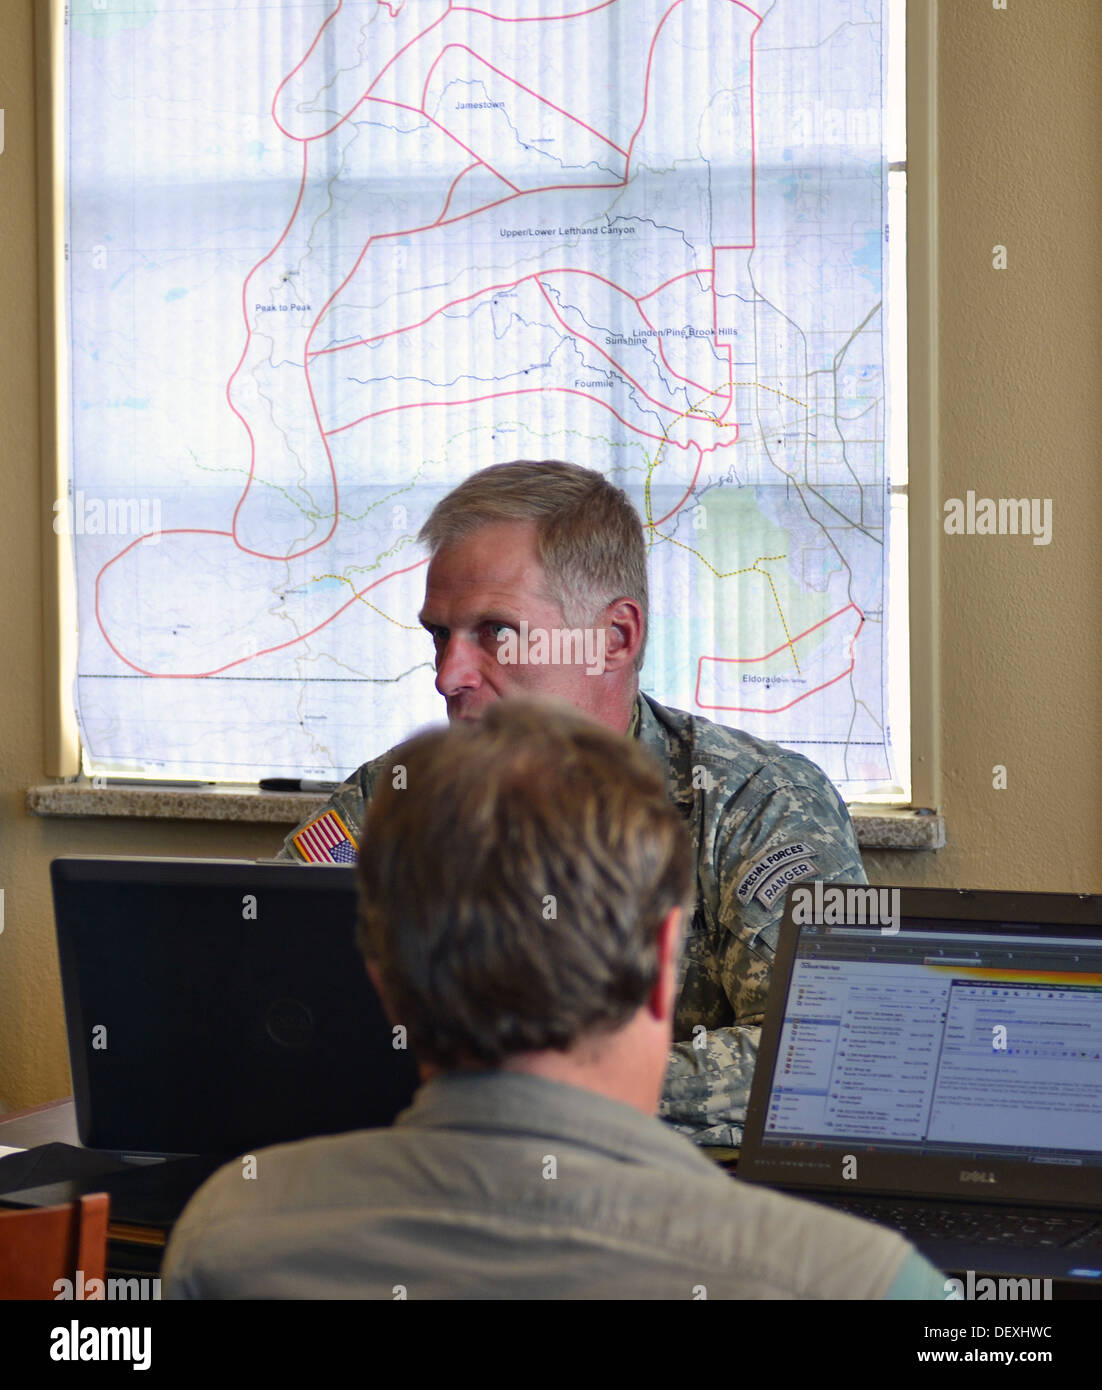 Lt. Col. Mitch Utterback, state inter-agency and liaison officer, Colorado National Guard, talks with supporting emergency agencies, at Boulder Municipal Airport in Boulder, Colo., Sept. 17, 2013. Colorado and Wyoming National Guard units were activated t - Stock Image